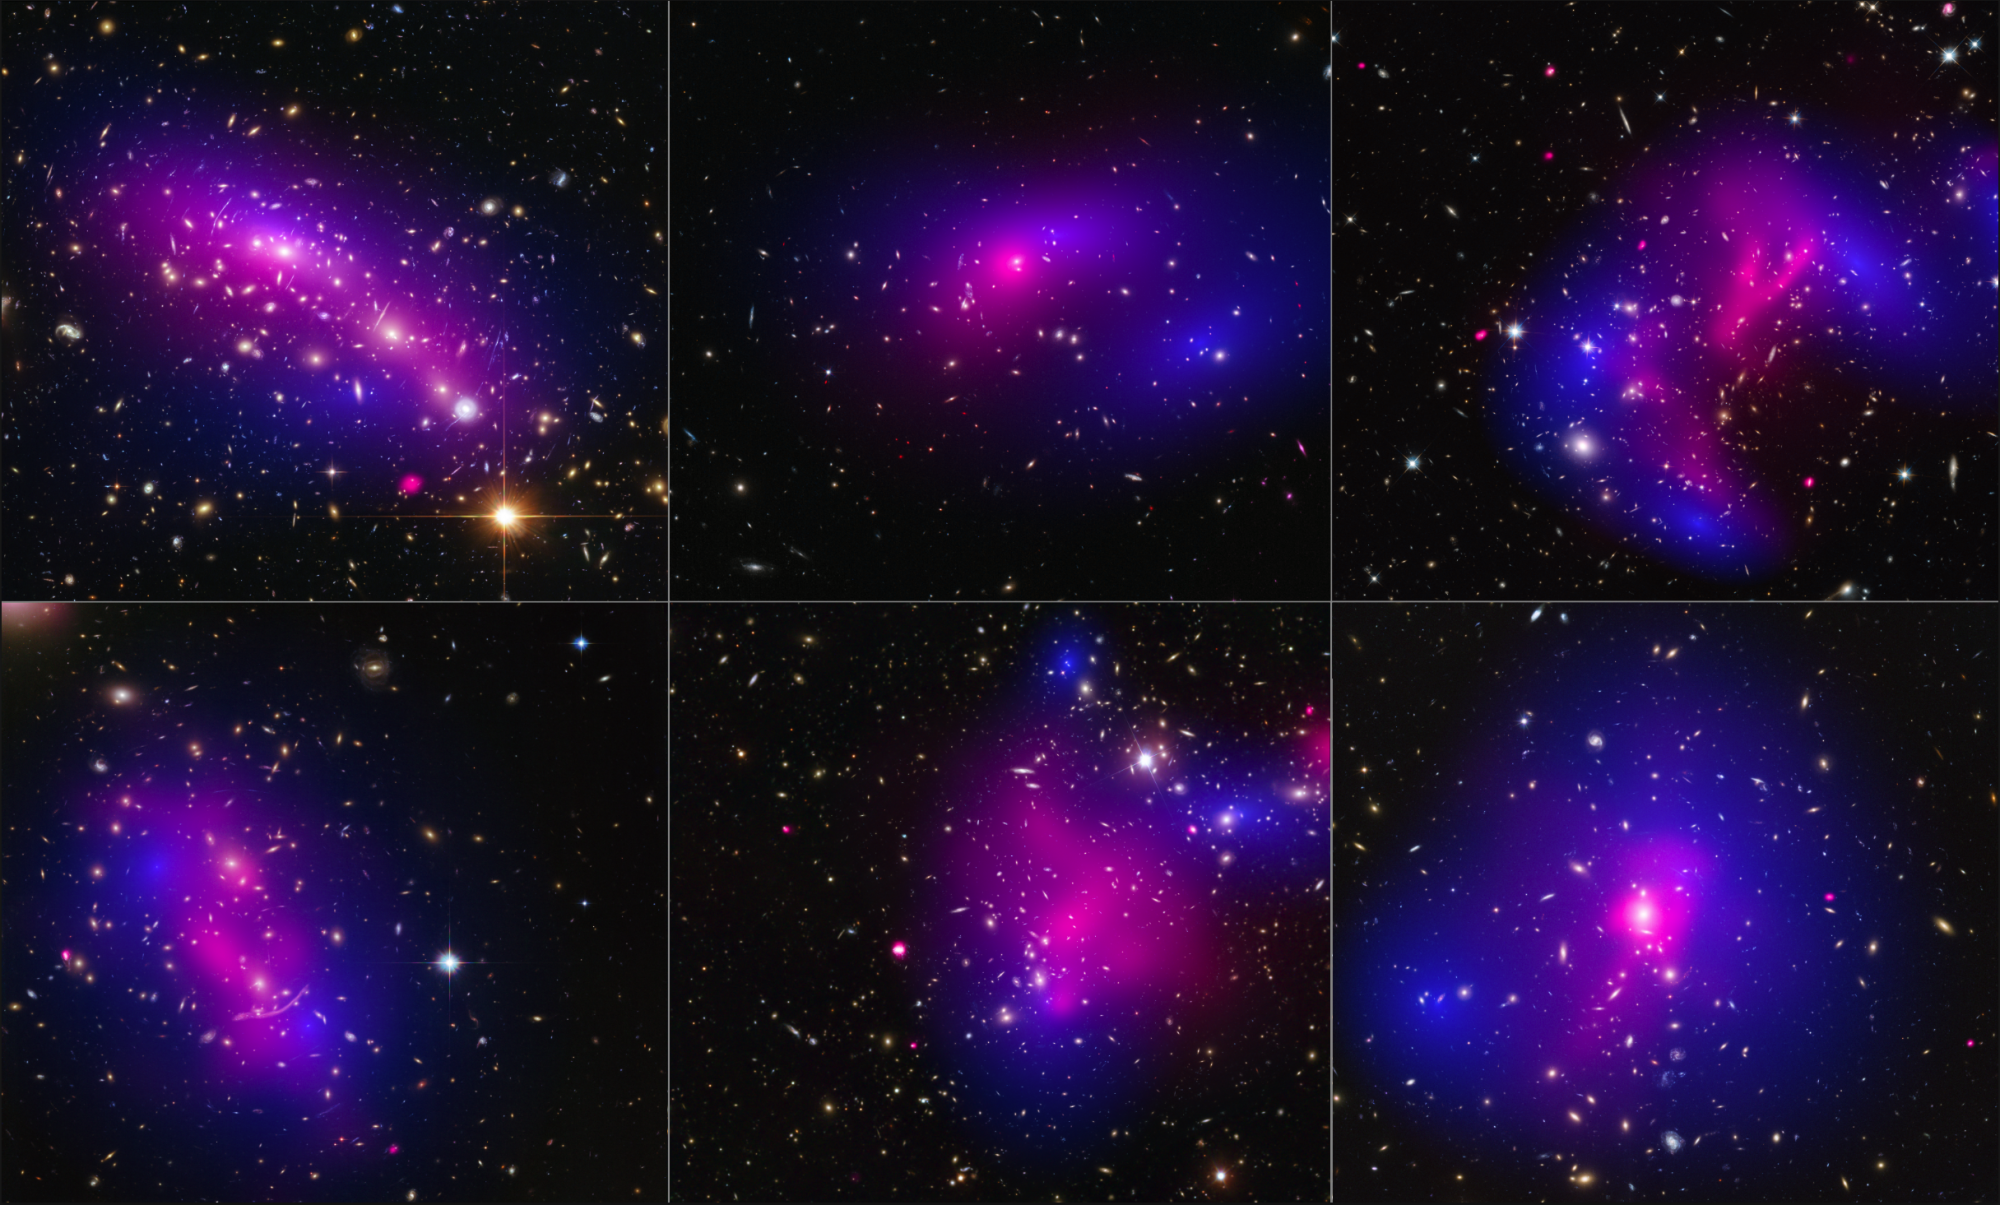 Six galaxy clusters pictured by NASA's Hubble Space Telescope and Chandra X-ray Observatory. Stars and dark matter are shown in blue, and impacted gas in pink. Credit: NASA/ESA/STScI/CXC